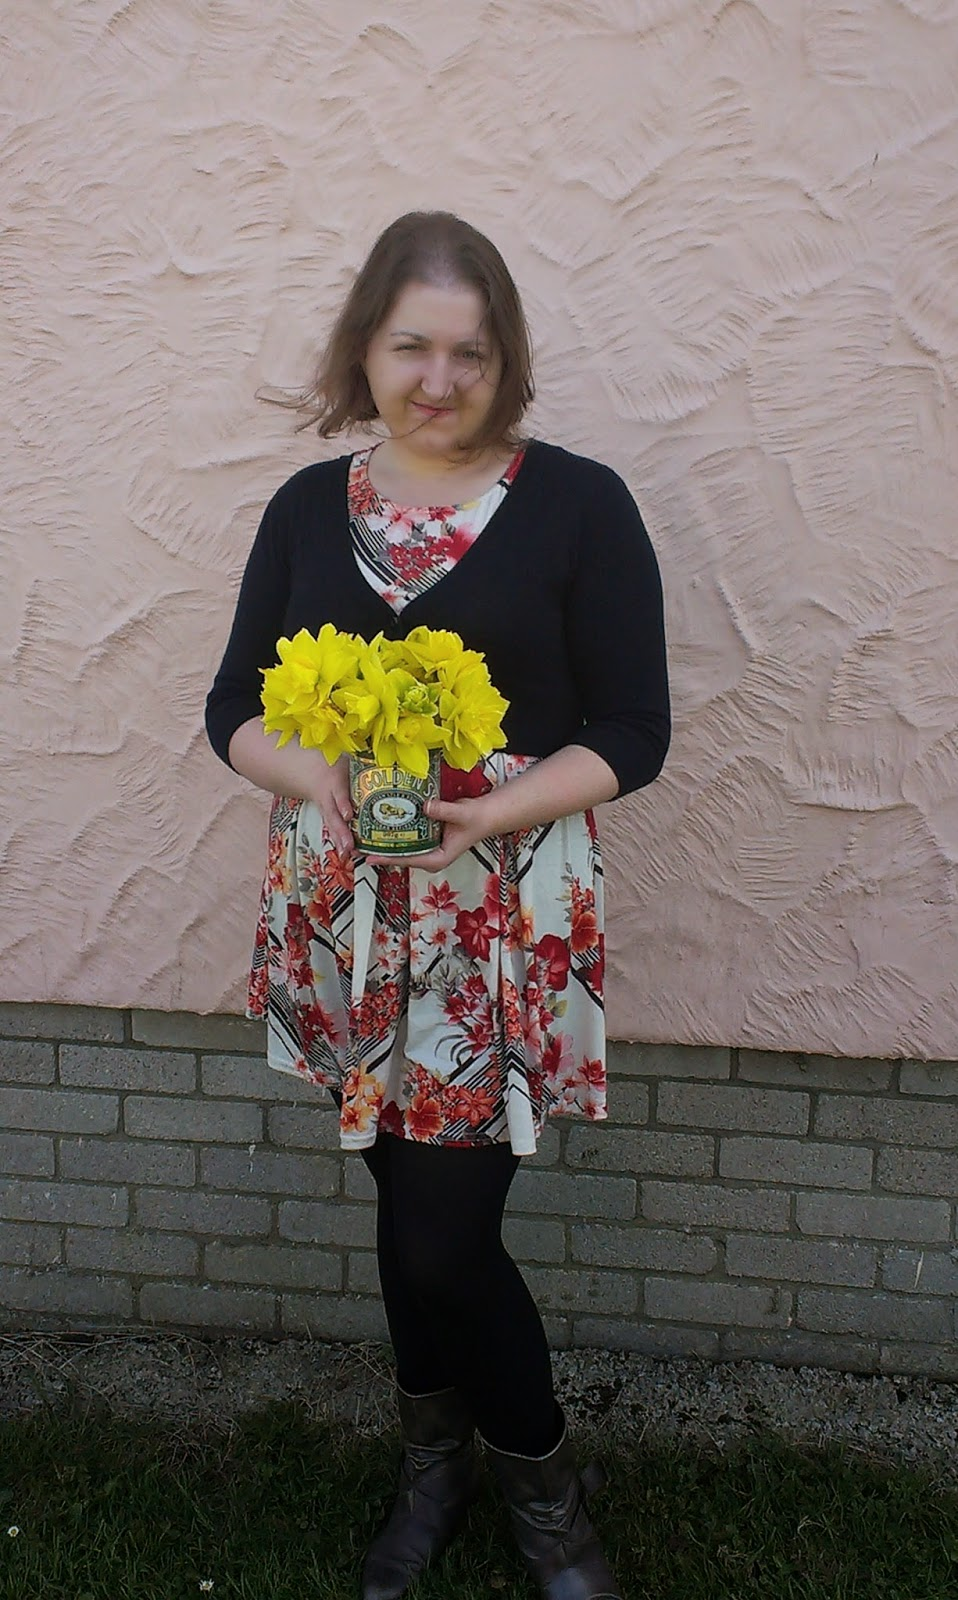 Me with daffodils